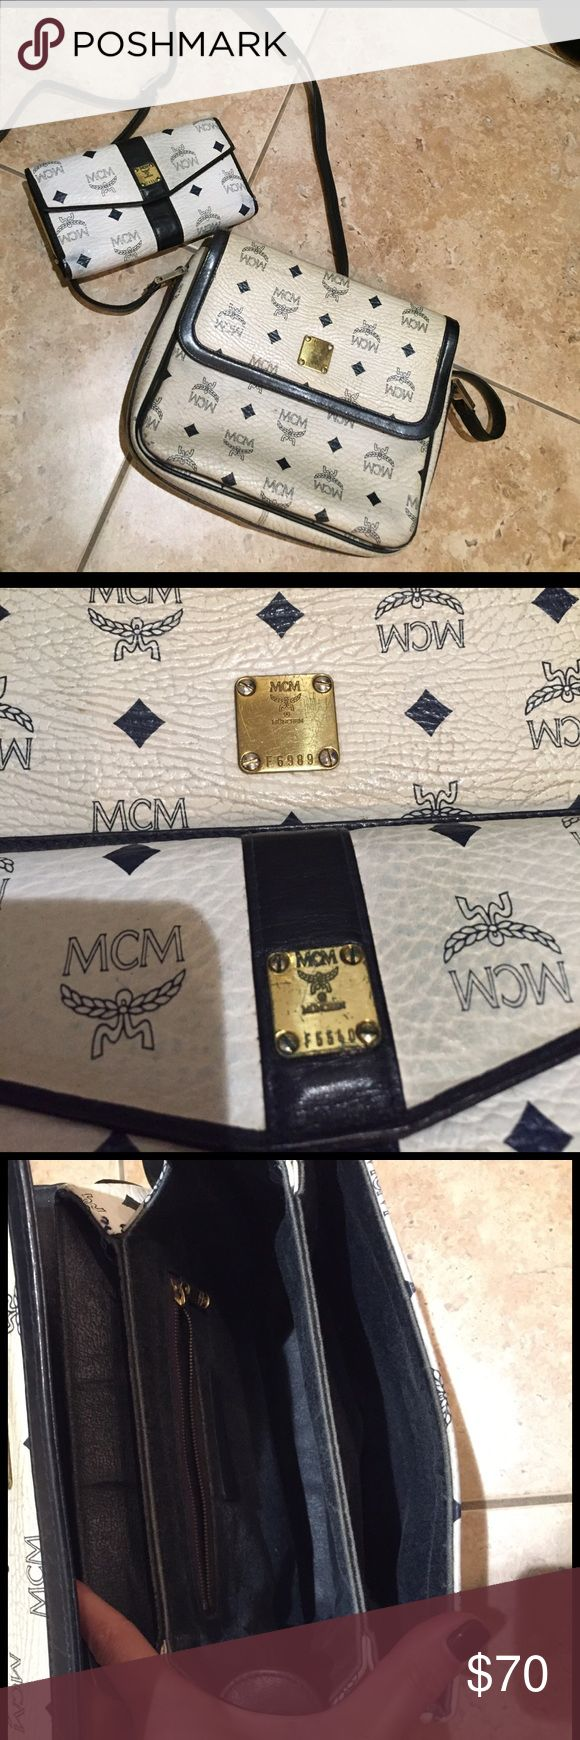 MCM PURSE Authentic Vintage MCM PURSE AND WALLET FOR SALE. Leather is really worn. Comes with dustbag MCM Bags Satchels